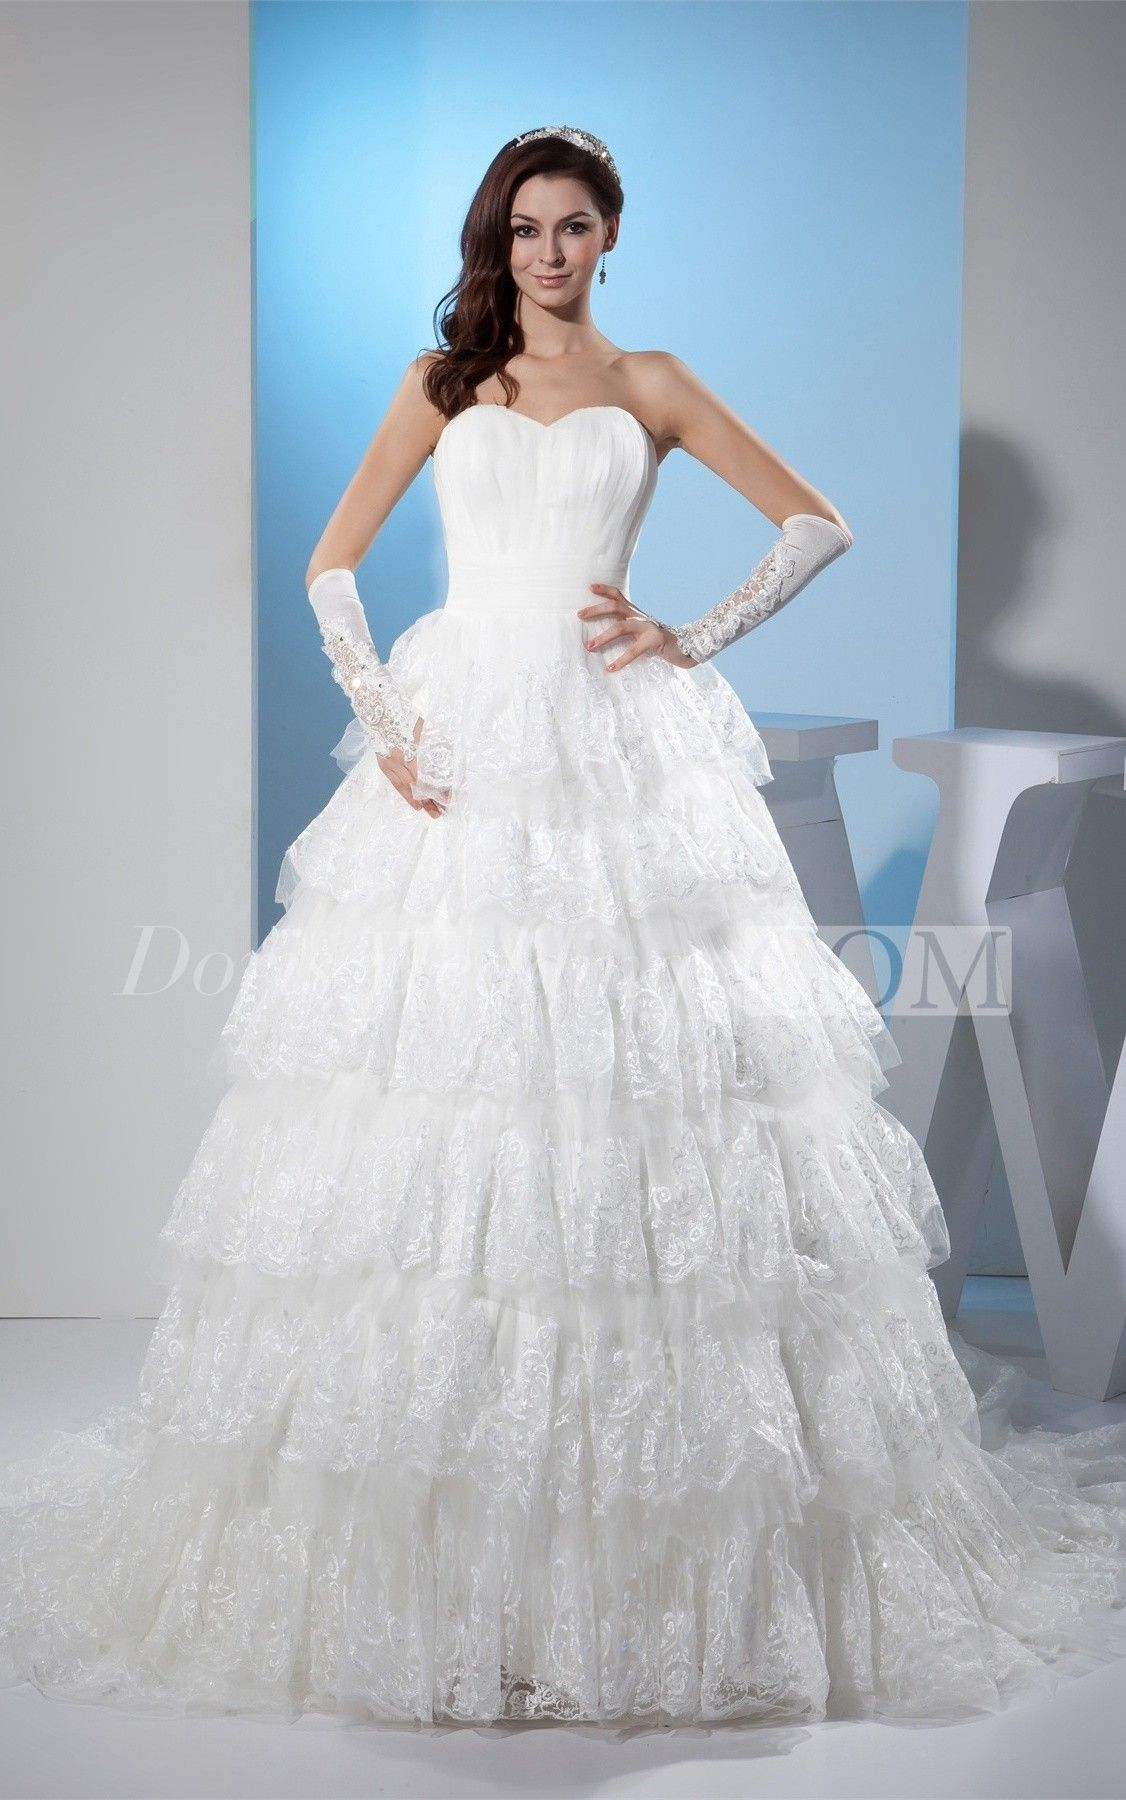 Strapless Sweetheart A Line Bodice Gown With Lace Layered